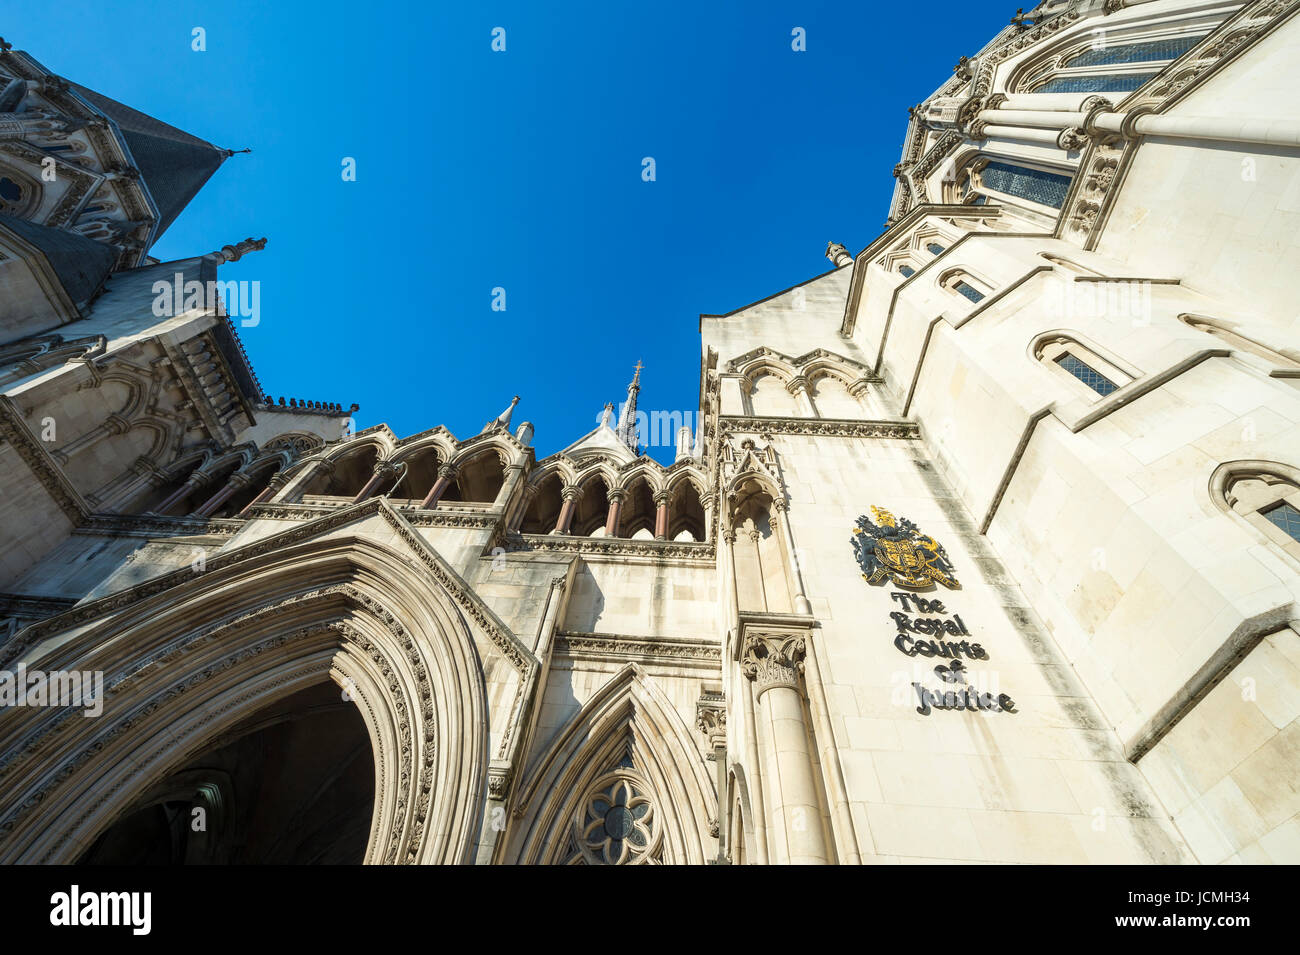 The Victorian Gothic style main entrance to the The Royal Courts of Justice public building in London, UK, opened - Stock Image